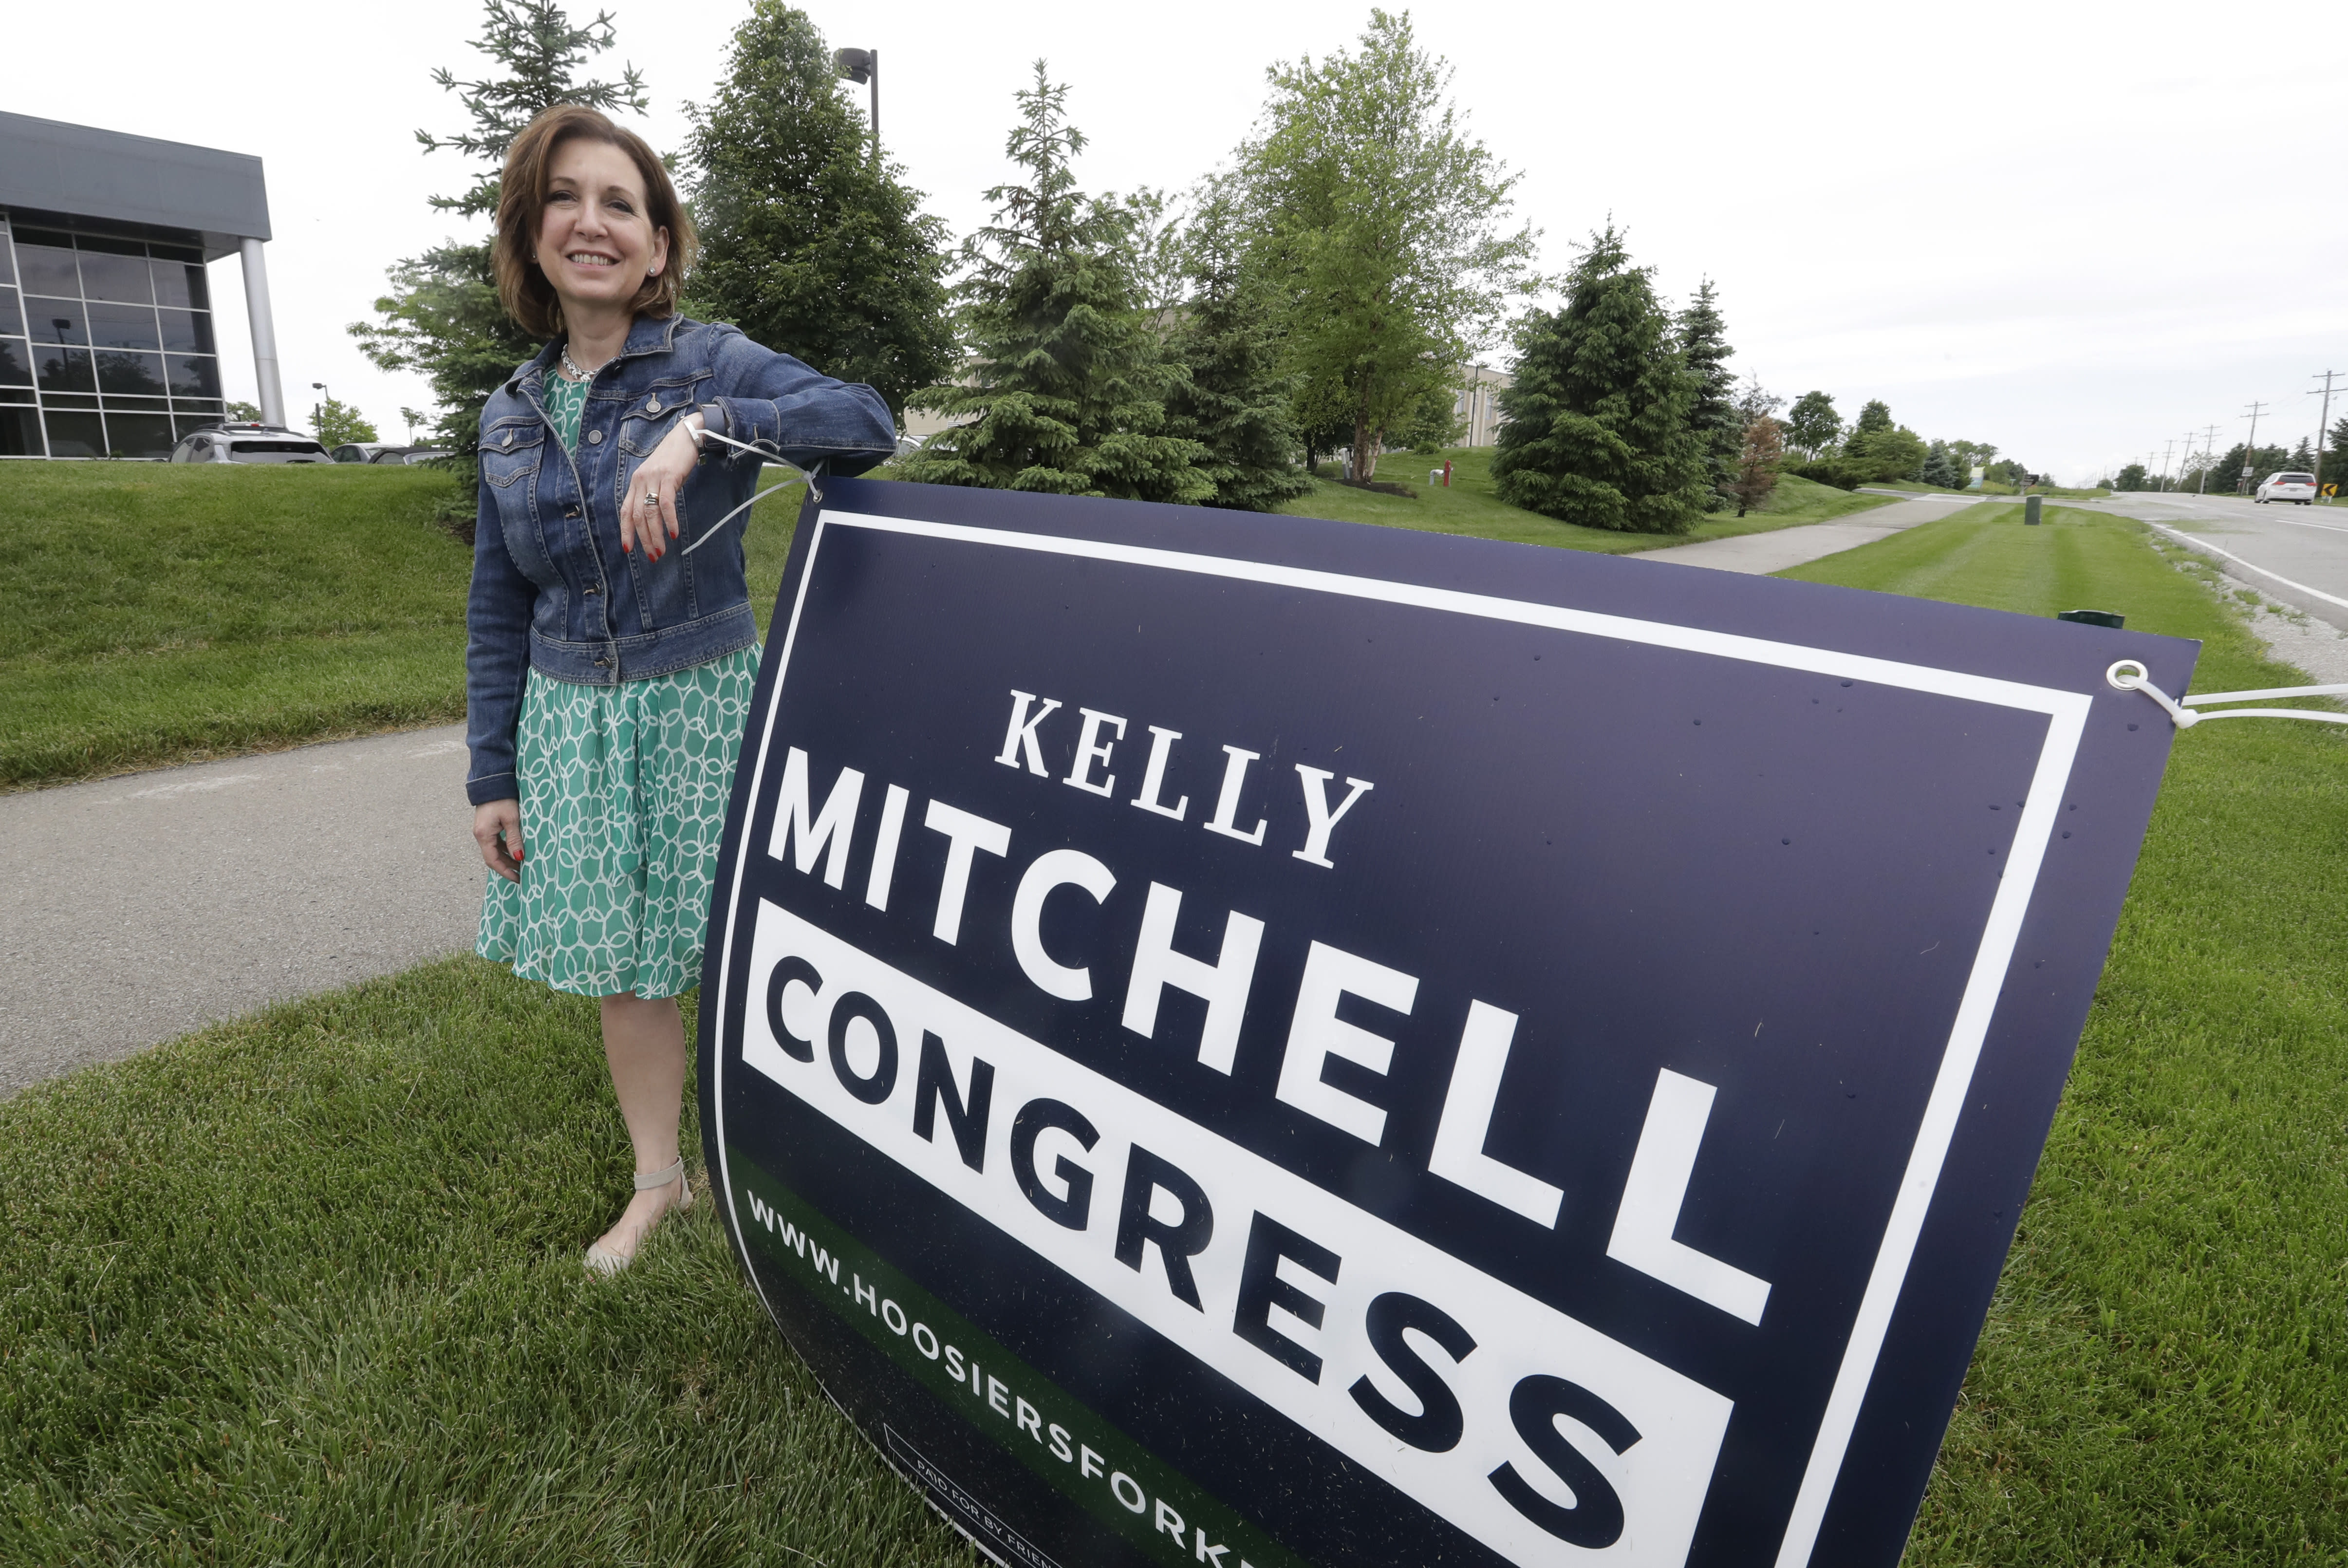 Indiana State Treasurer Kelly Mitchell stands by a campaign sign, Thursday, May 28, 2020, in Westfield, Ind. Mitchell is a candidate for Indiana's 5th Congressional District. More Republican women than ever are seeking House seats this year after the 2018 election further diminished their limited ranks in Congress. But so far it appears that any gains this November could be modest. (AP Photo/Darron Cummings)